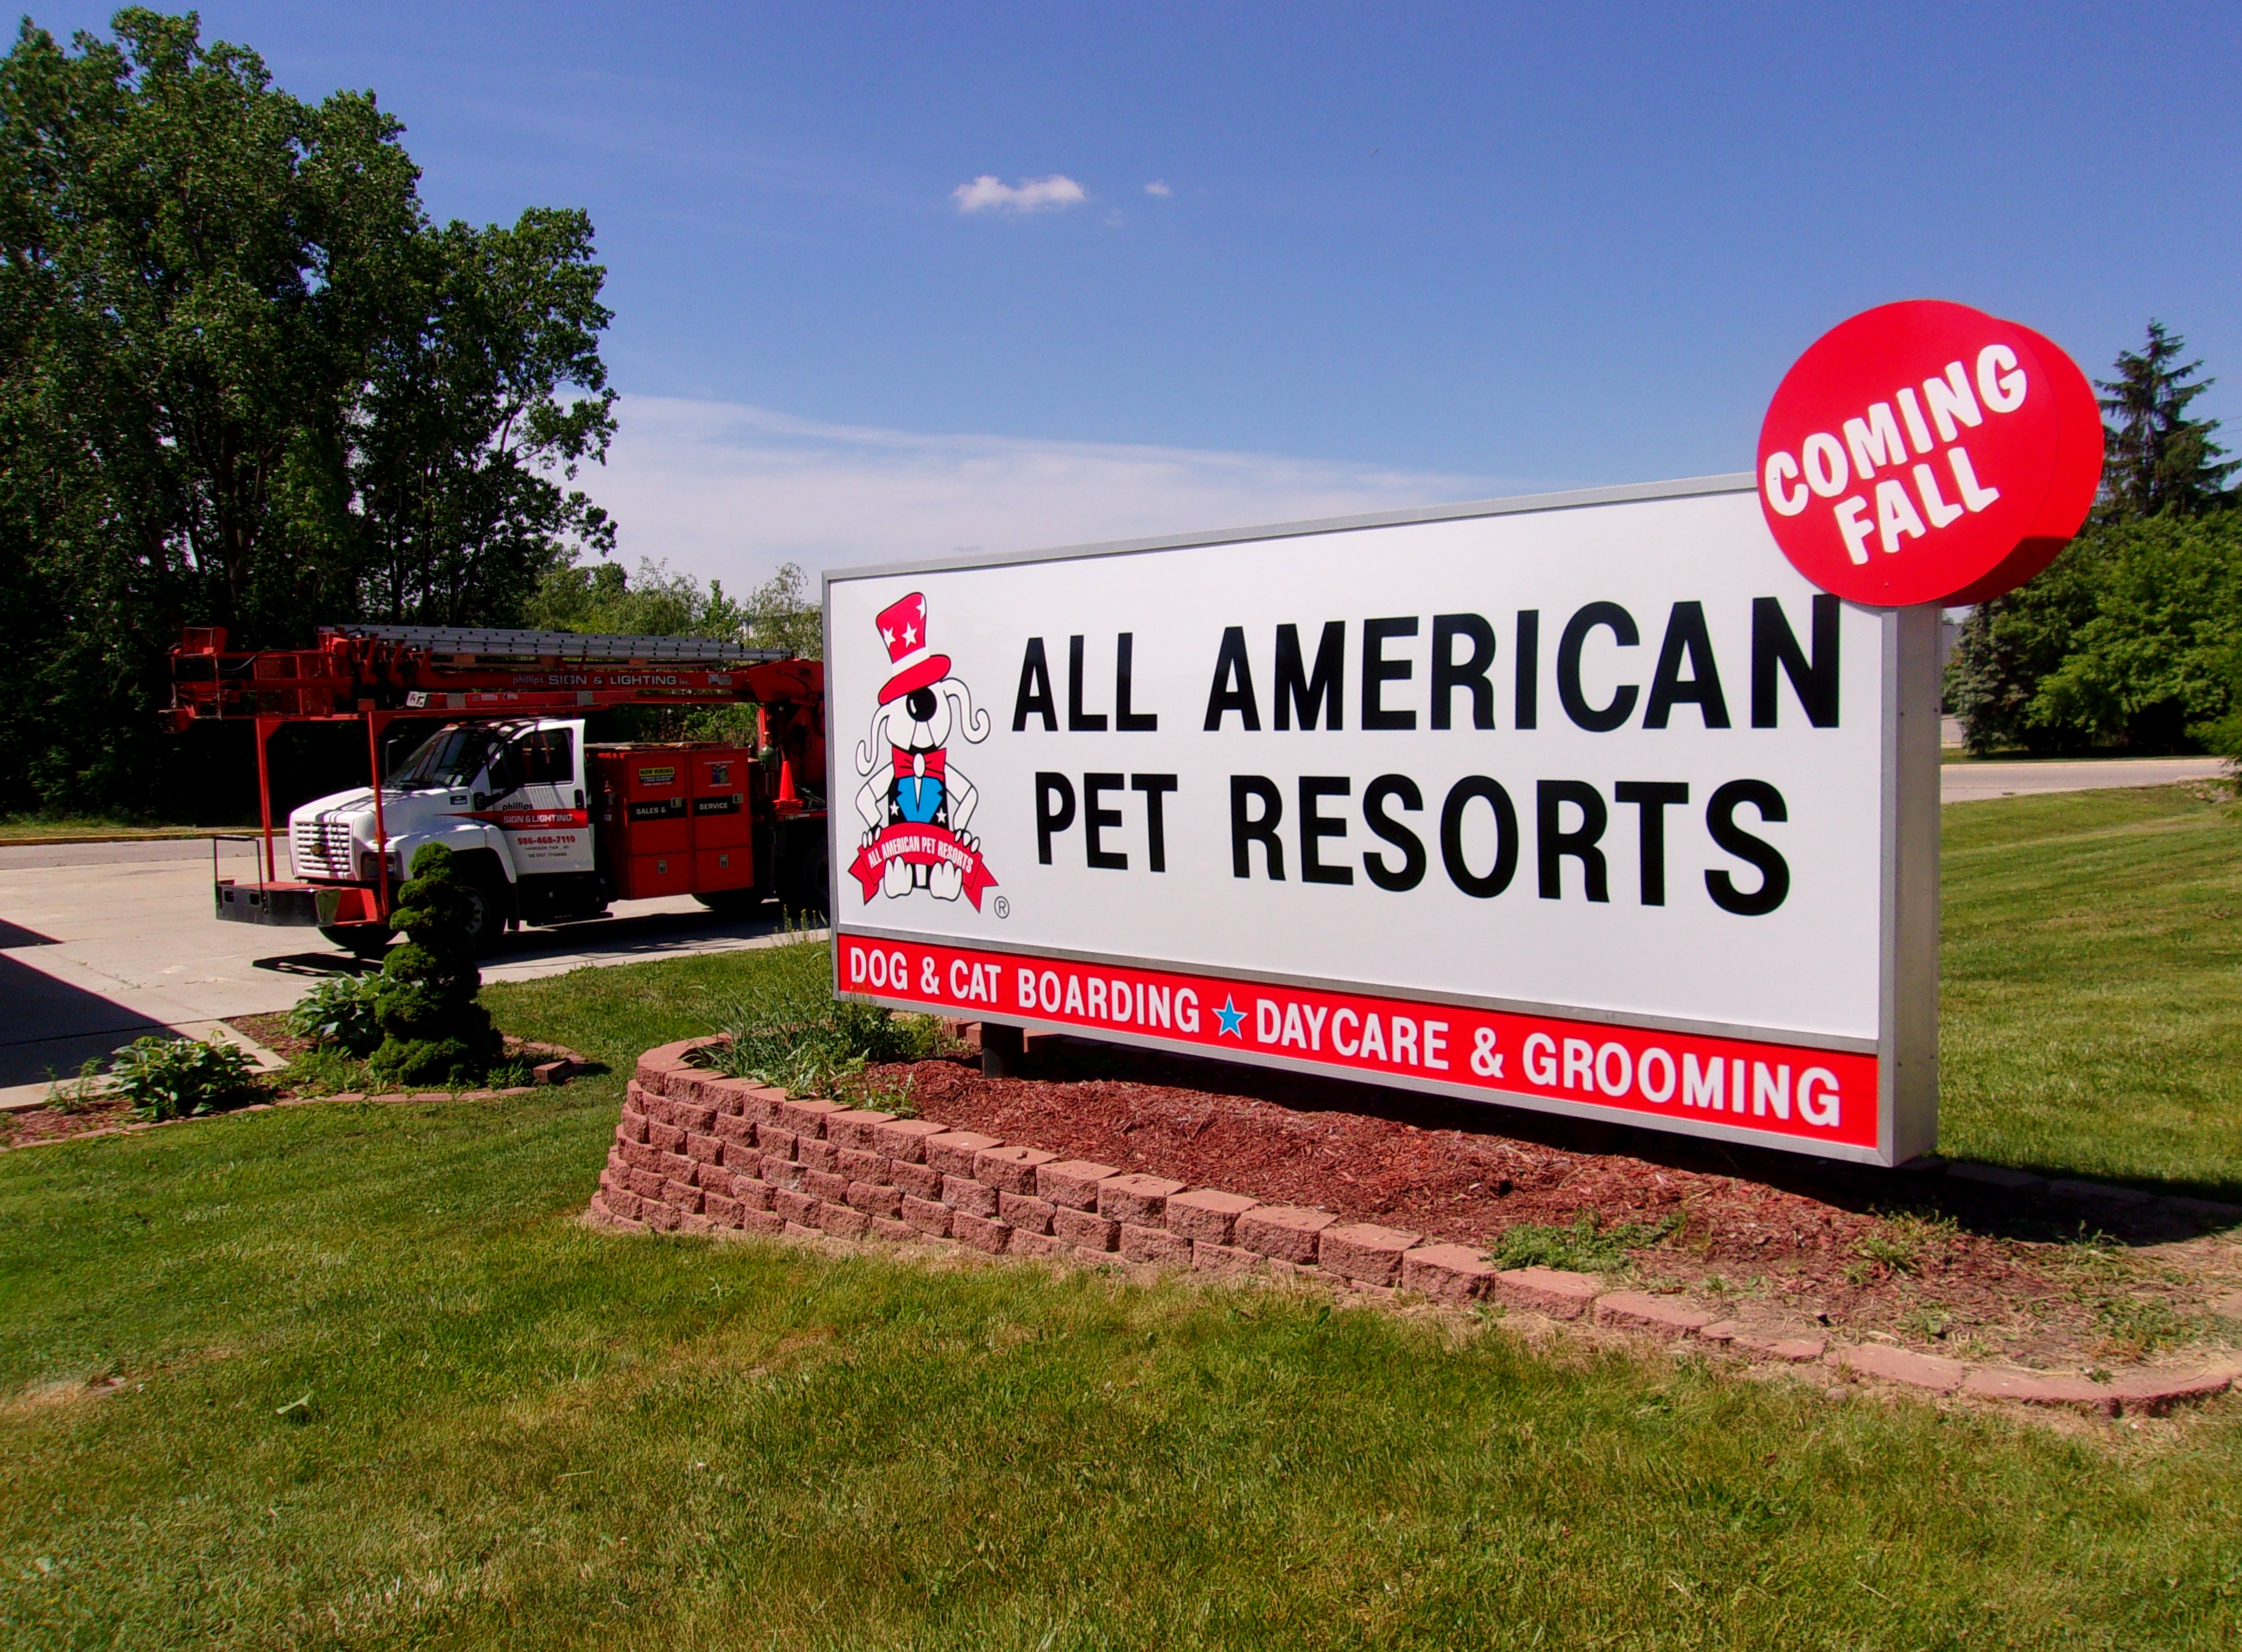 All American Pet Resorts Shelby Township